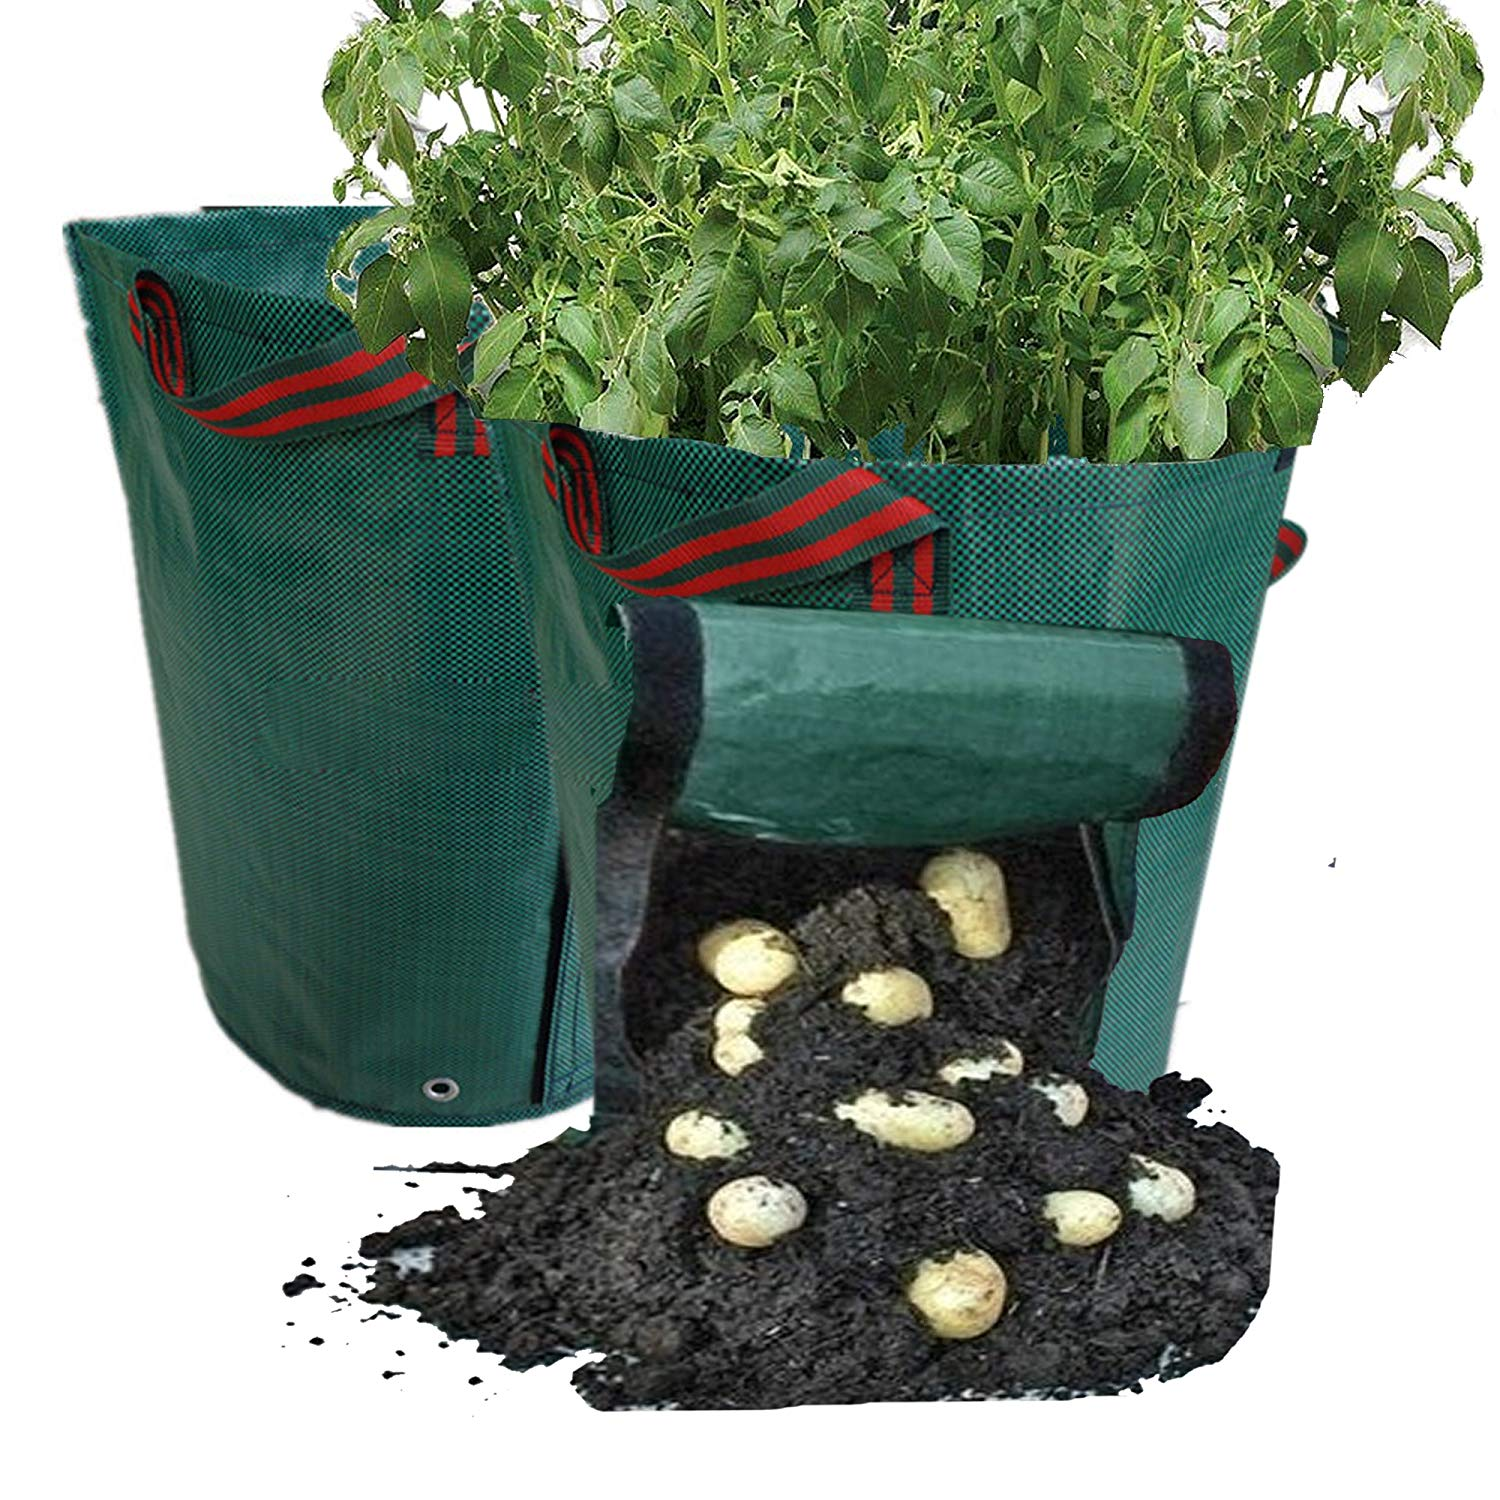 Univegrow 14 Gallons Garden Potato Planter Bags 2PCS, Growing Planting Bag for Vegetable Potato, Carrot, Tomato, Onion